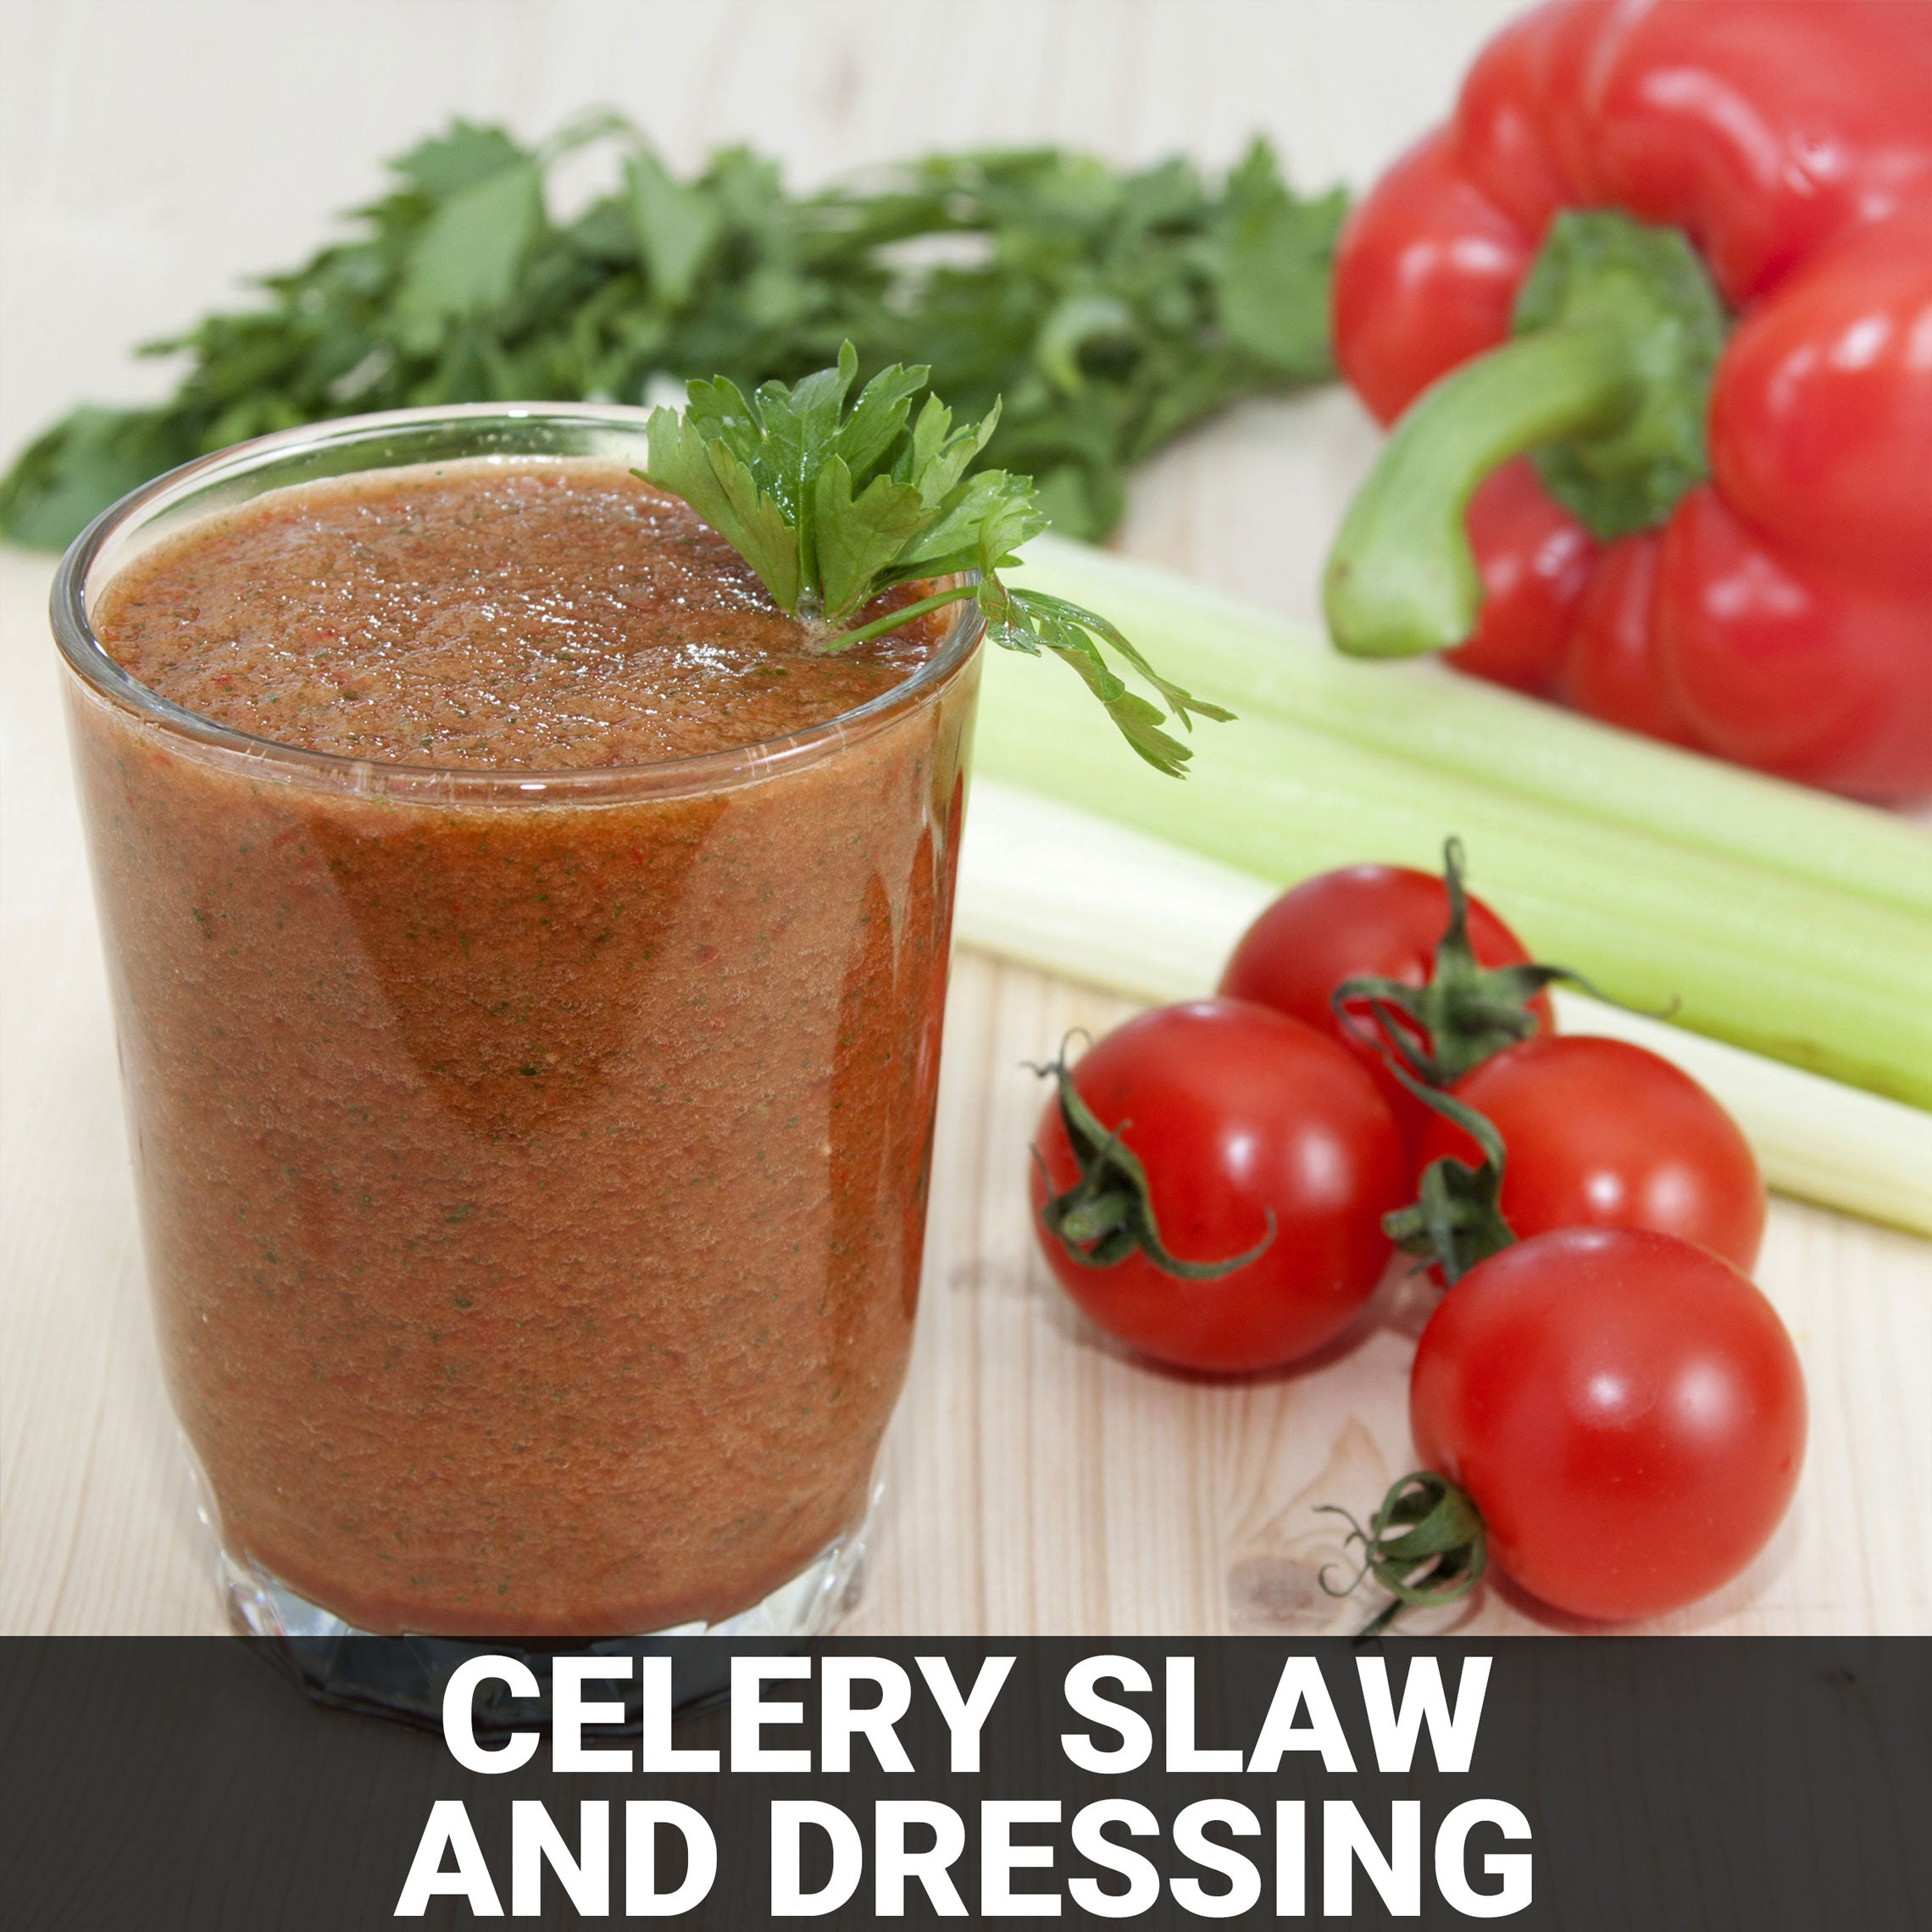 Celery Slaw and Dressing Recipe - Foods Alive